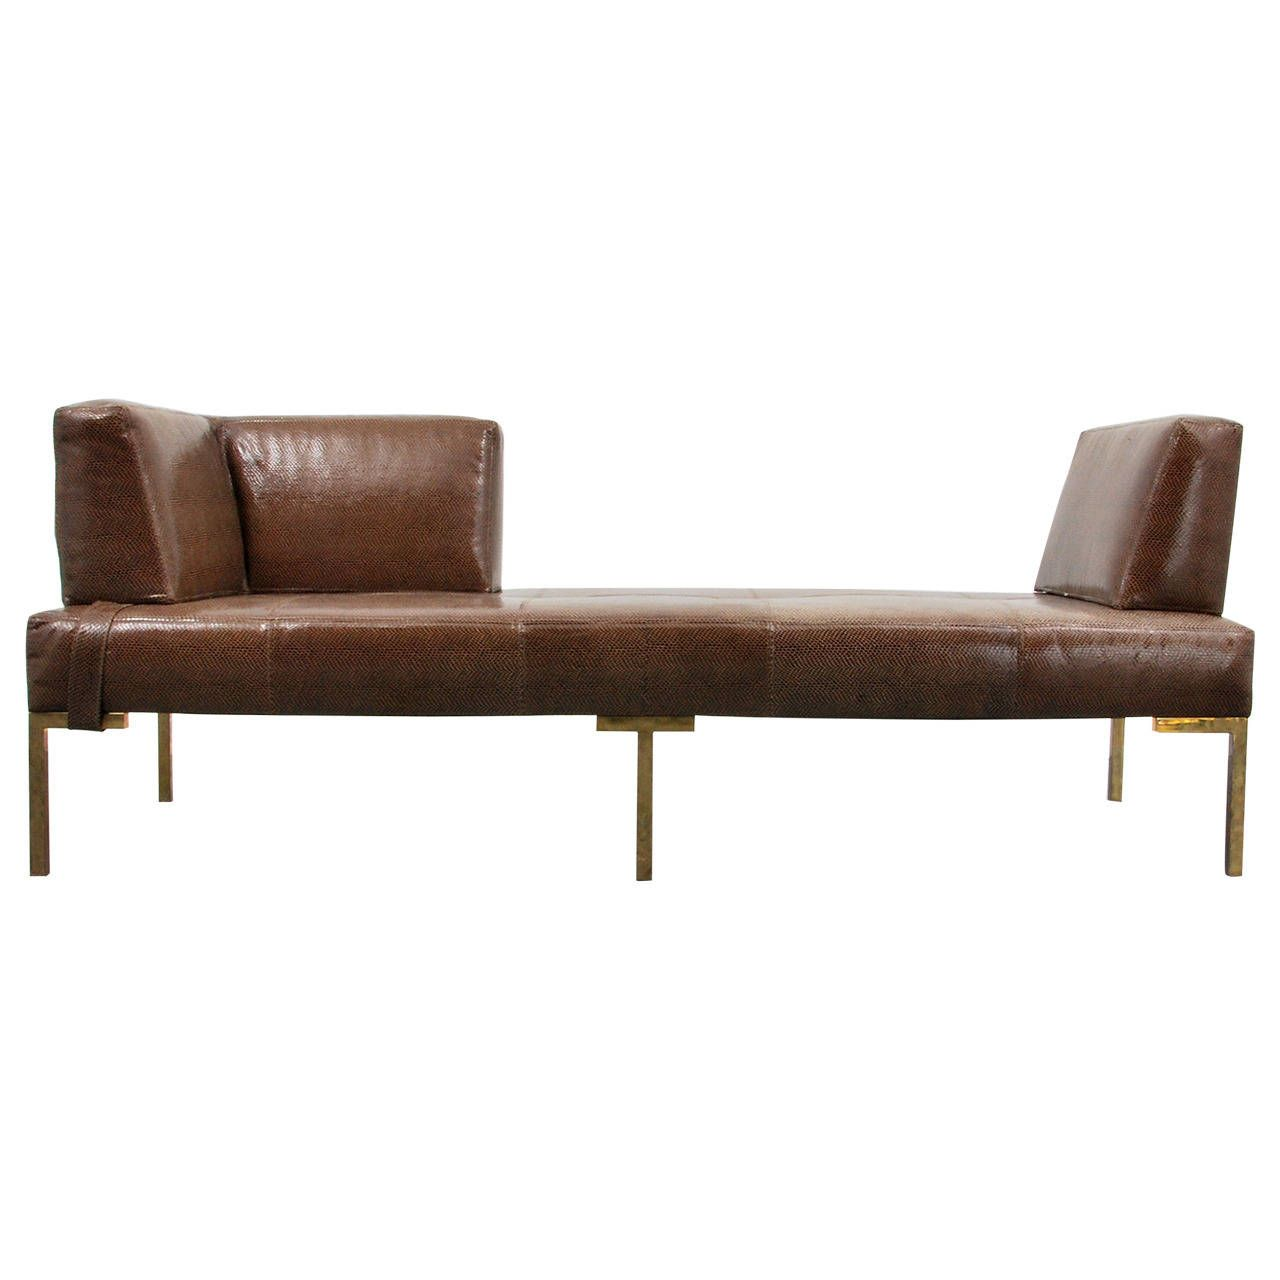 Luigi Gentile Leather Daybeds or Chaise Lounges Two Available  sc 1 st  Pinterest : chaise daybed lounge - Sectionals, Sofas & Couches